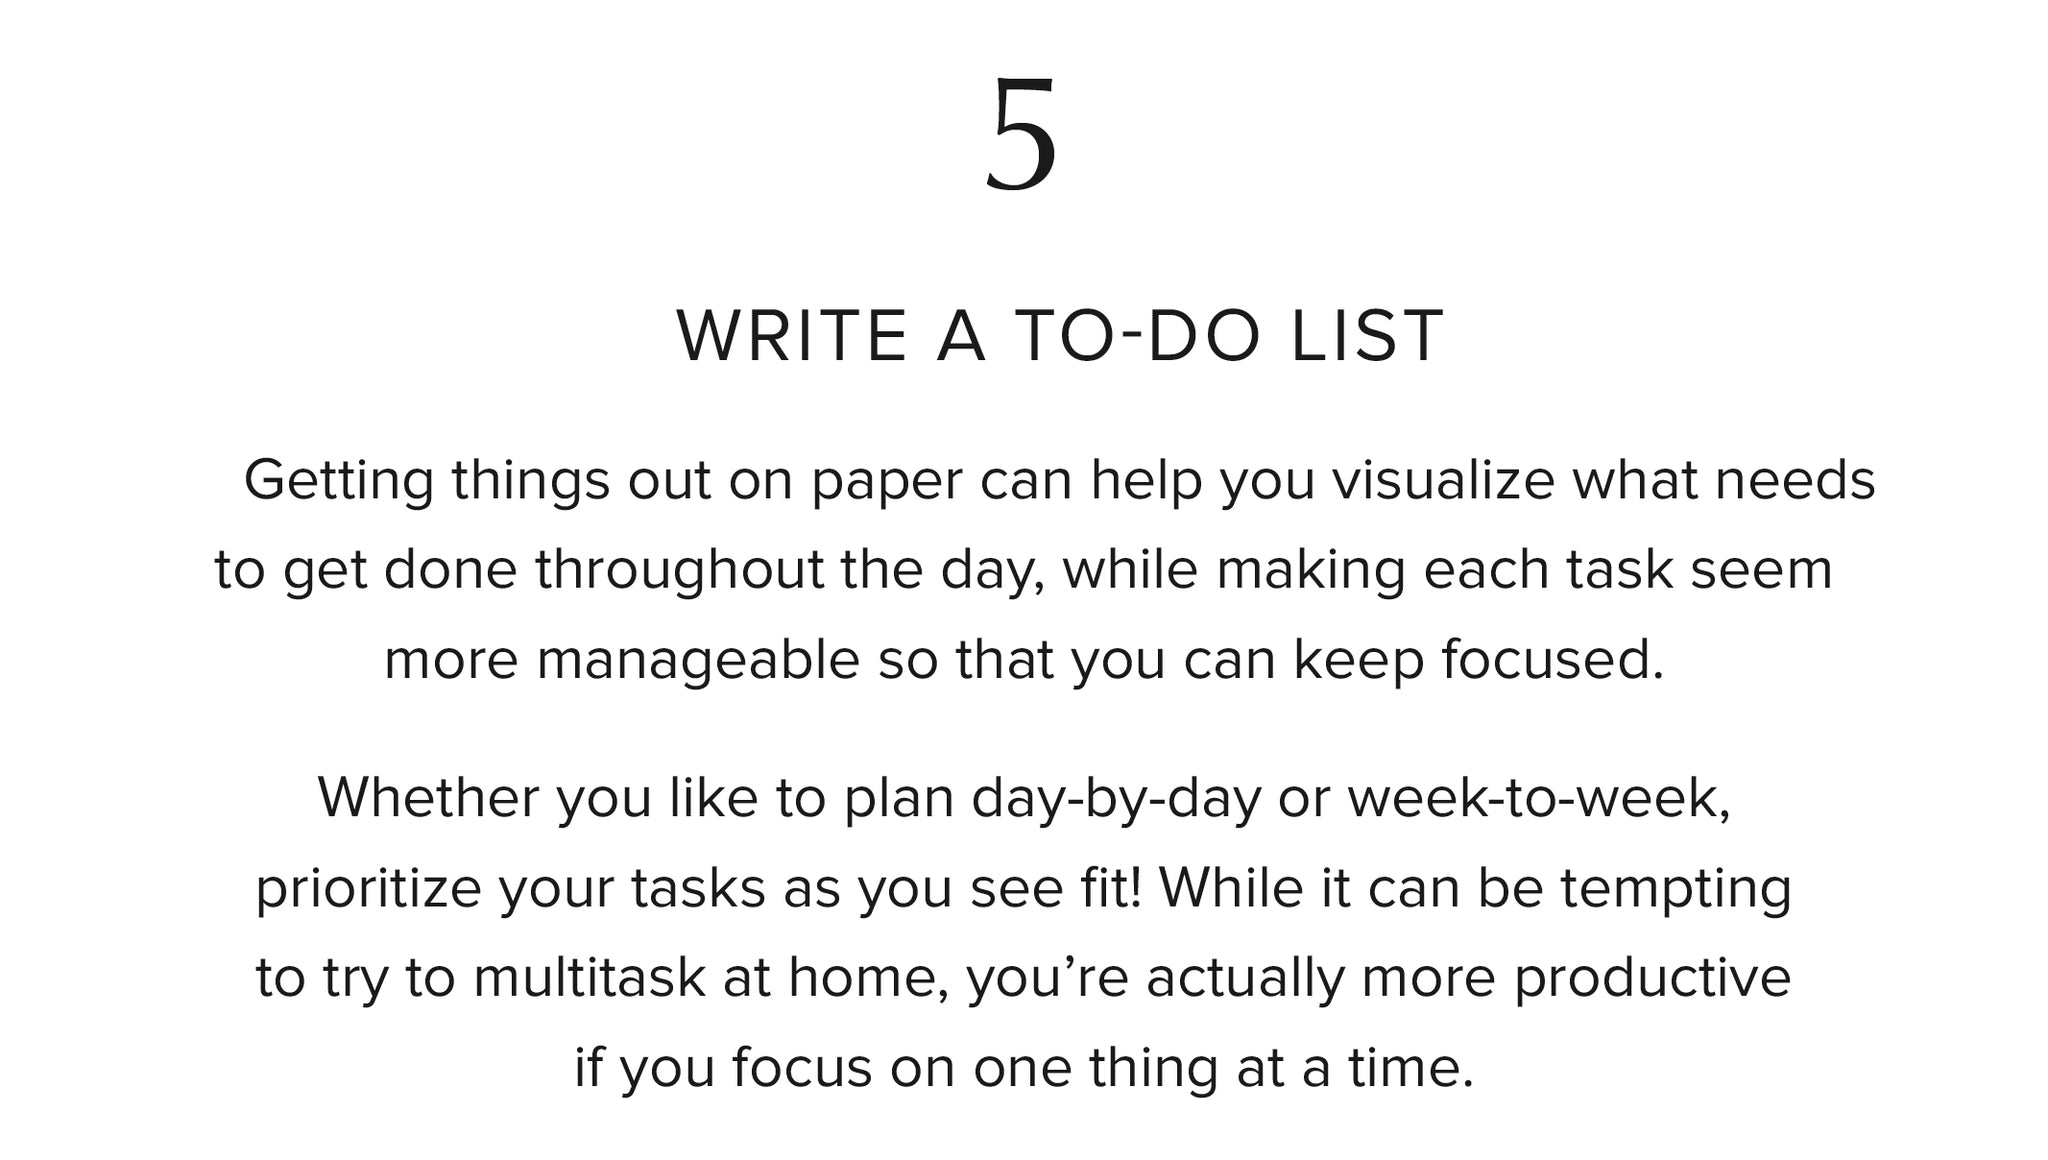 5. Write a to-do list